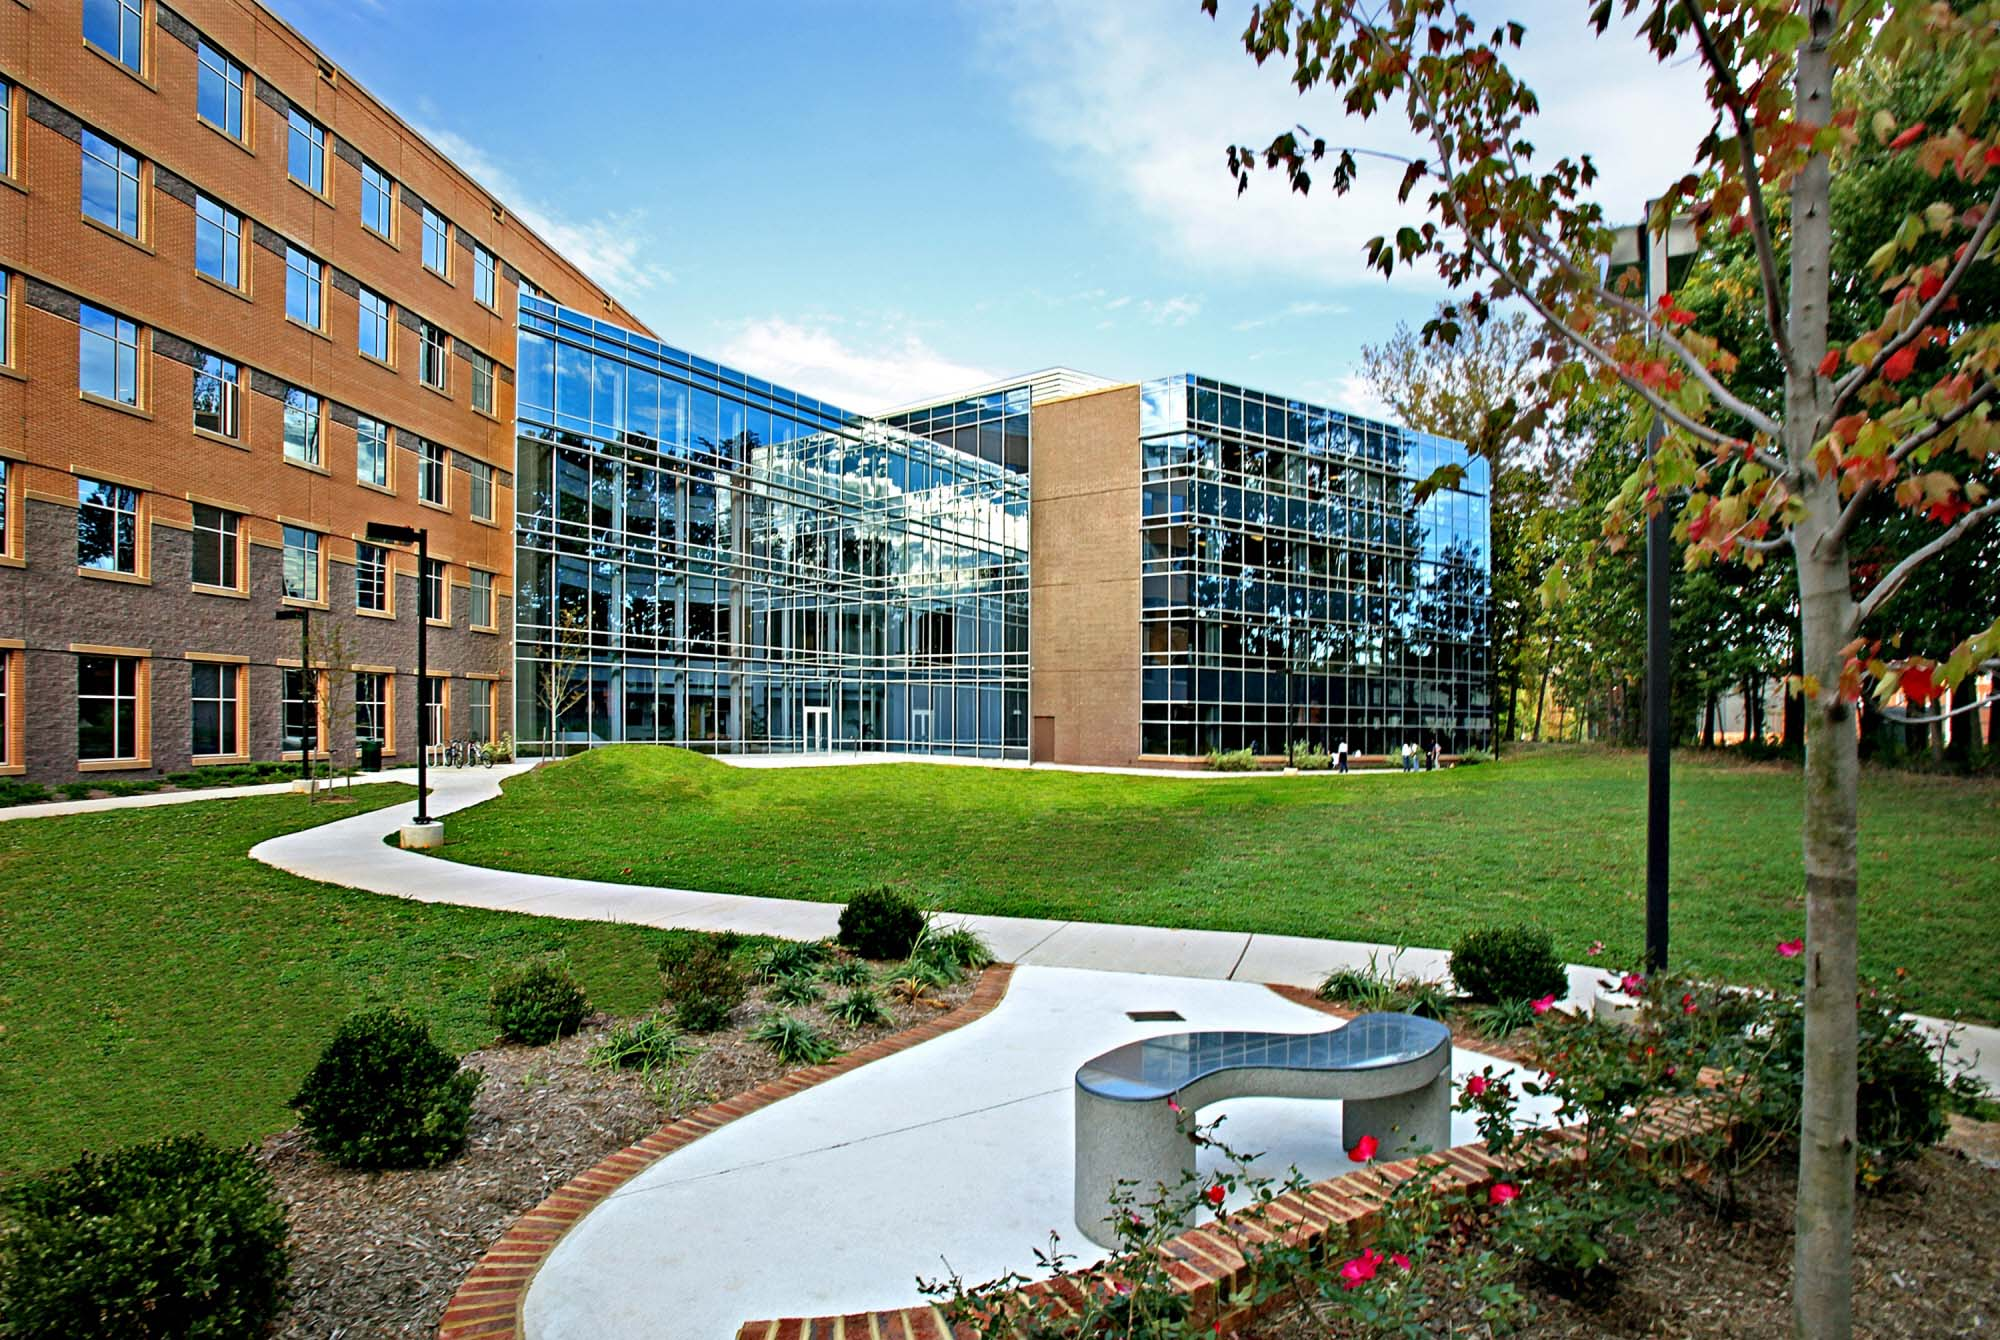 George Mason University, Long and Kimmy Nguyen Engineering Building